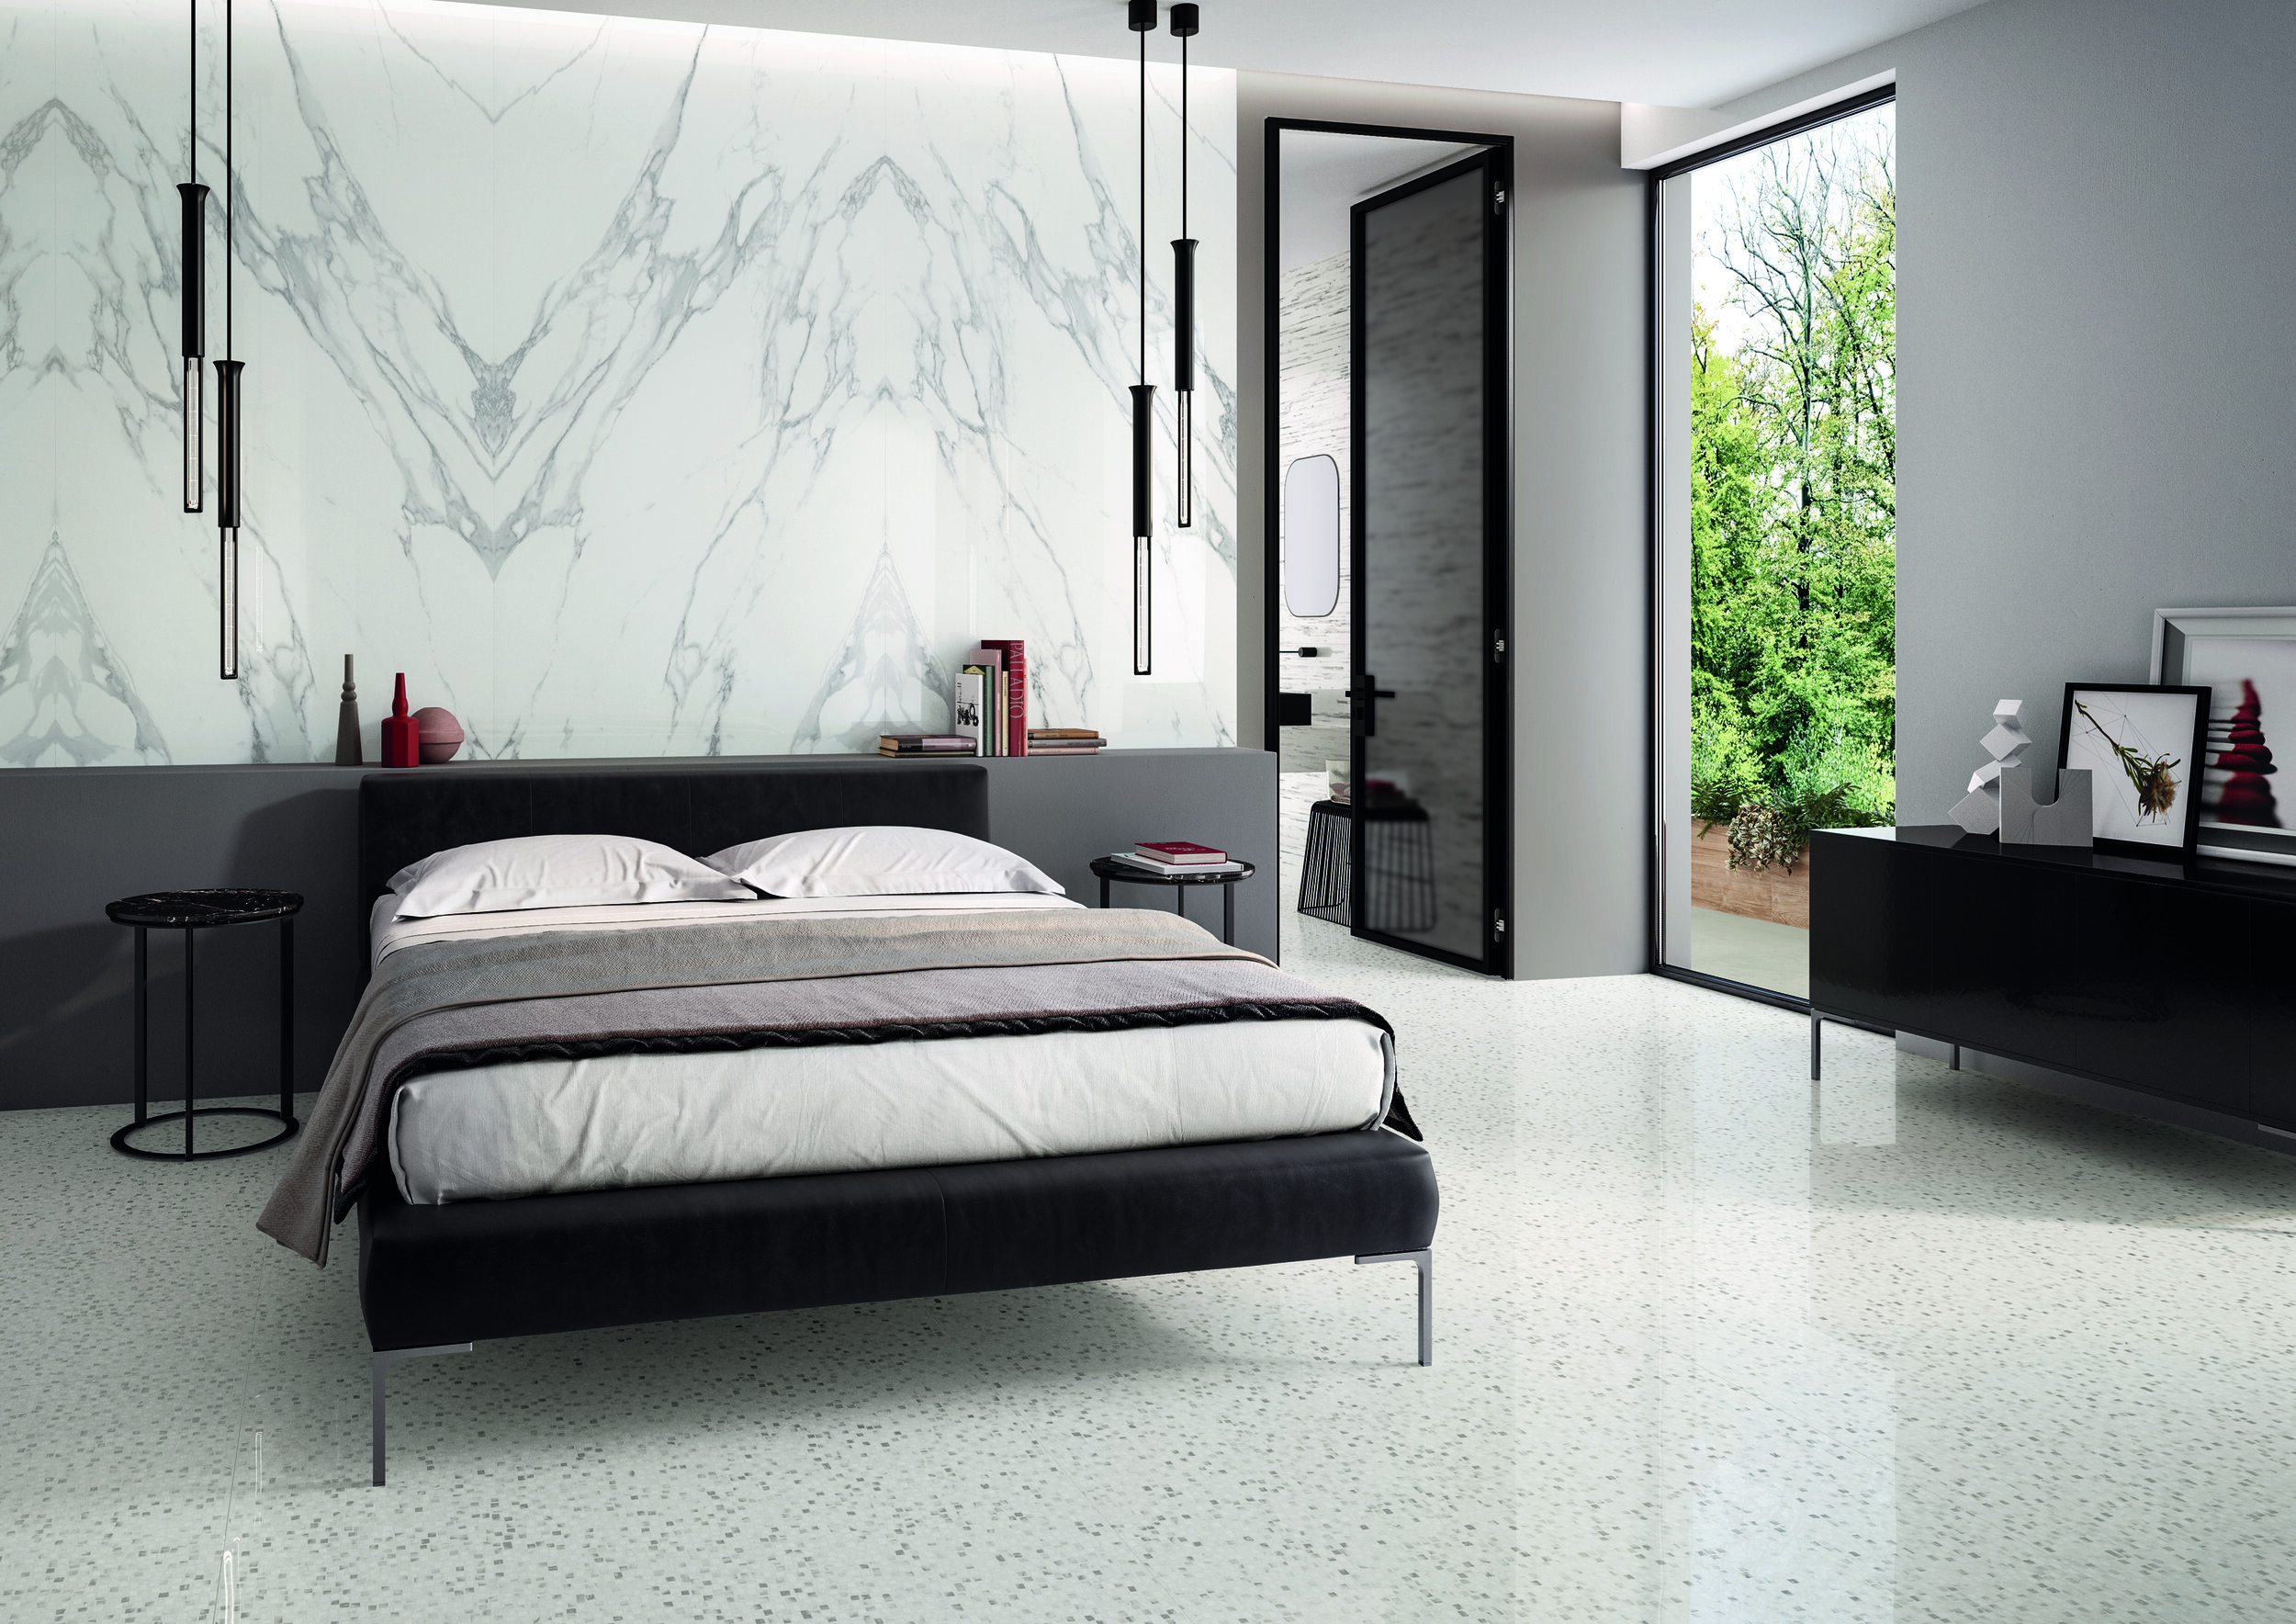 Tele Di Marmo Padron Flooring And Design Center Tile